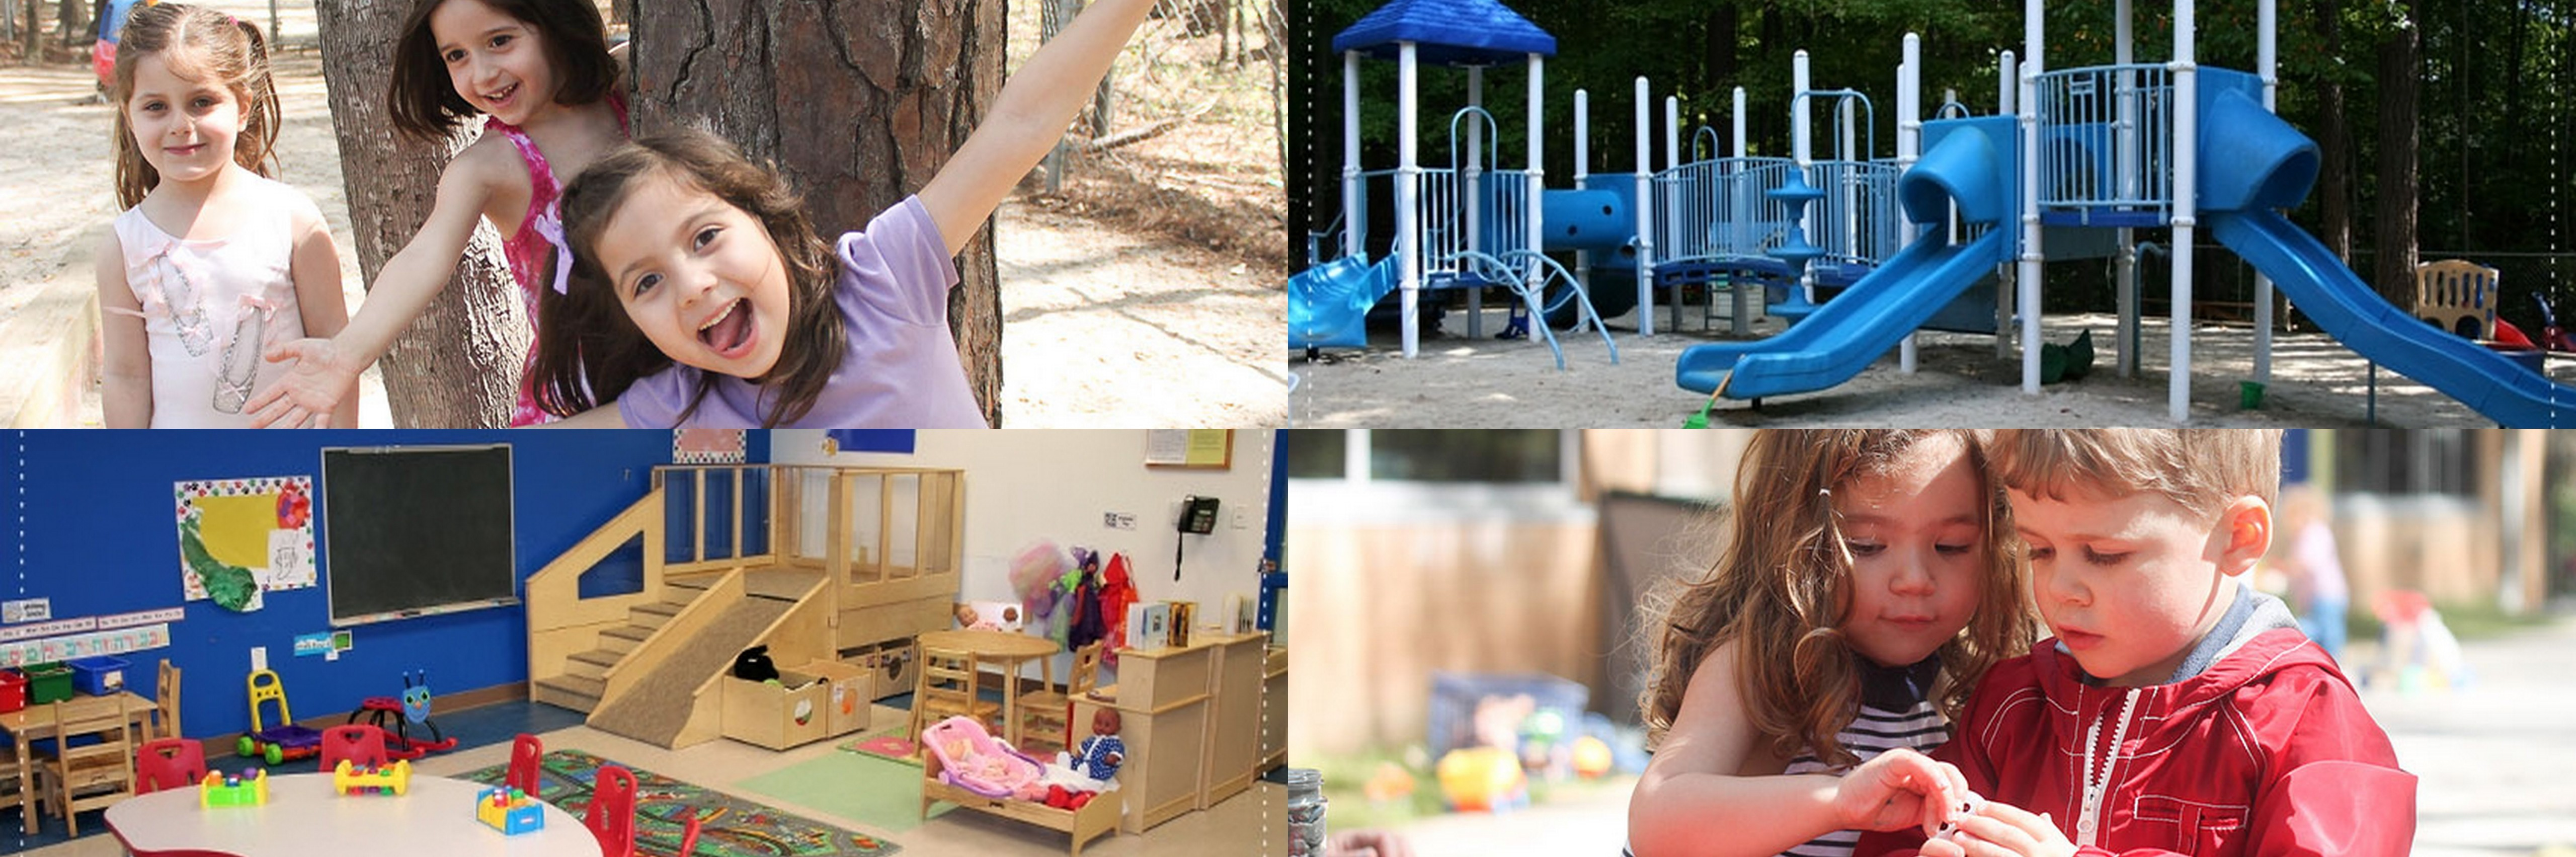 """<a href=""""https://jewishjobs.com/jobs/view/53544""""                                     target=""""_blank"""">                                                                 <span class=""""slider_title"""">                                     Beth Meyer Preschool Seeks New Director                                </span>                                                                 </a>                                                                                                                                                                                       <span class=""""slider_description"""">Seeking a warm, energetic, and visionary Director of Early Childhood Education and Programming. This position includes management of the Preschool and partnership with the Synagogue to develop and implement programming for young children and families.</span>                                                                                     <a href=""""https://jewishjobs.com/jobs/view/53544"""" class=""""slider_link""""                             target=""""_blank"""">                             Apply Here                            </a>"""